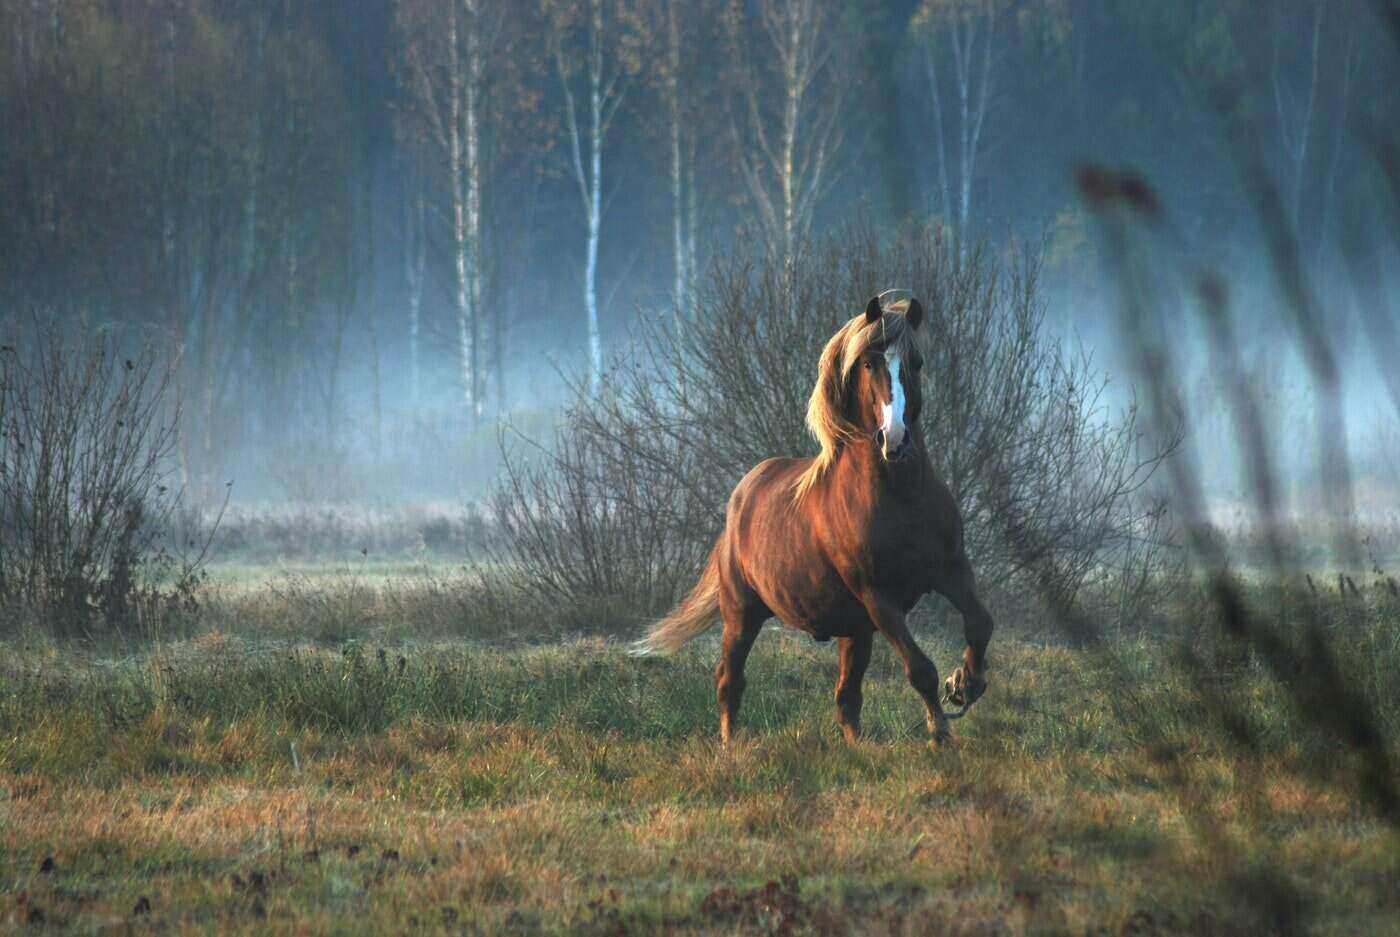 horse running in misty field - 7 ways to memorialize your equine friend